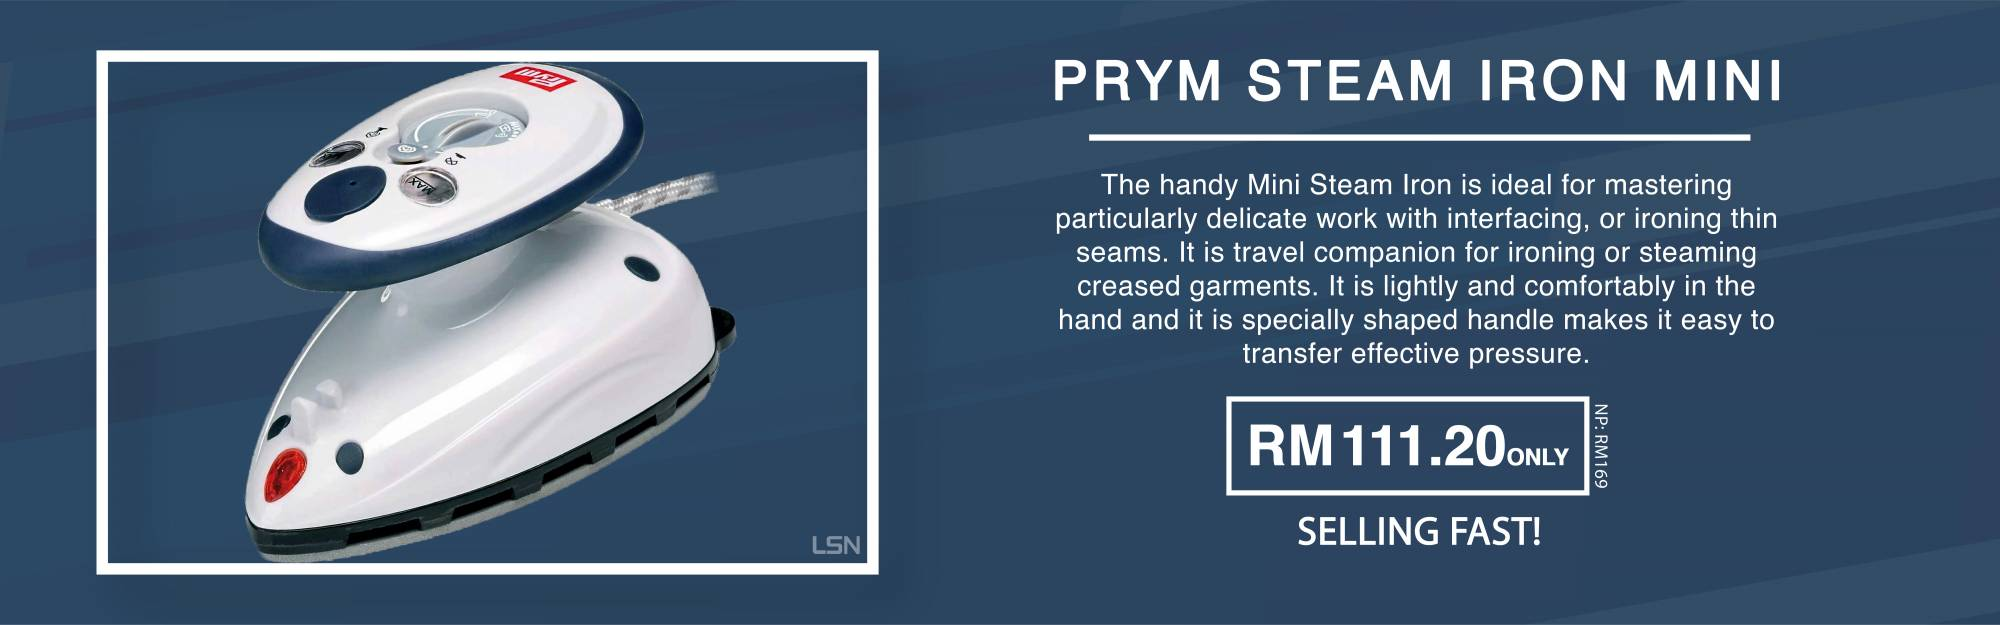 Prym Steam Iron Mini